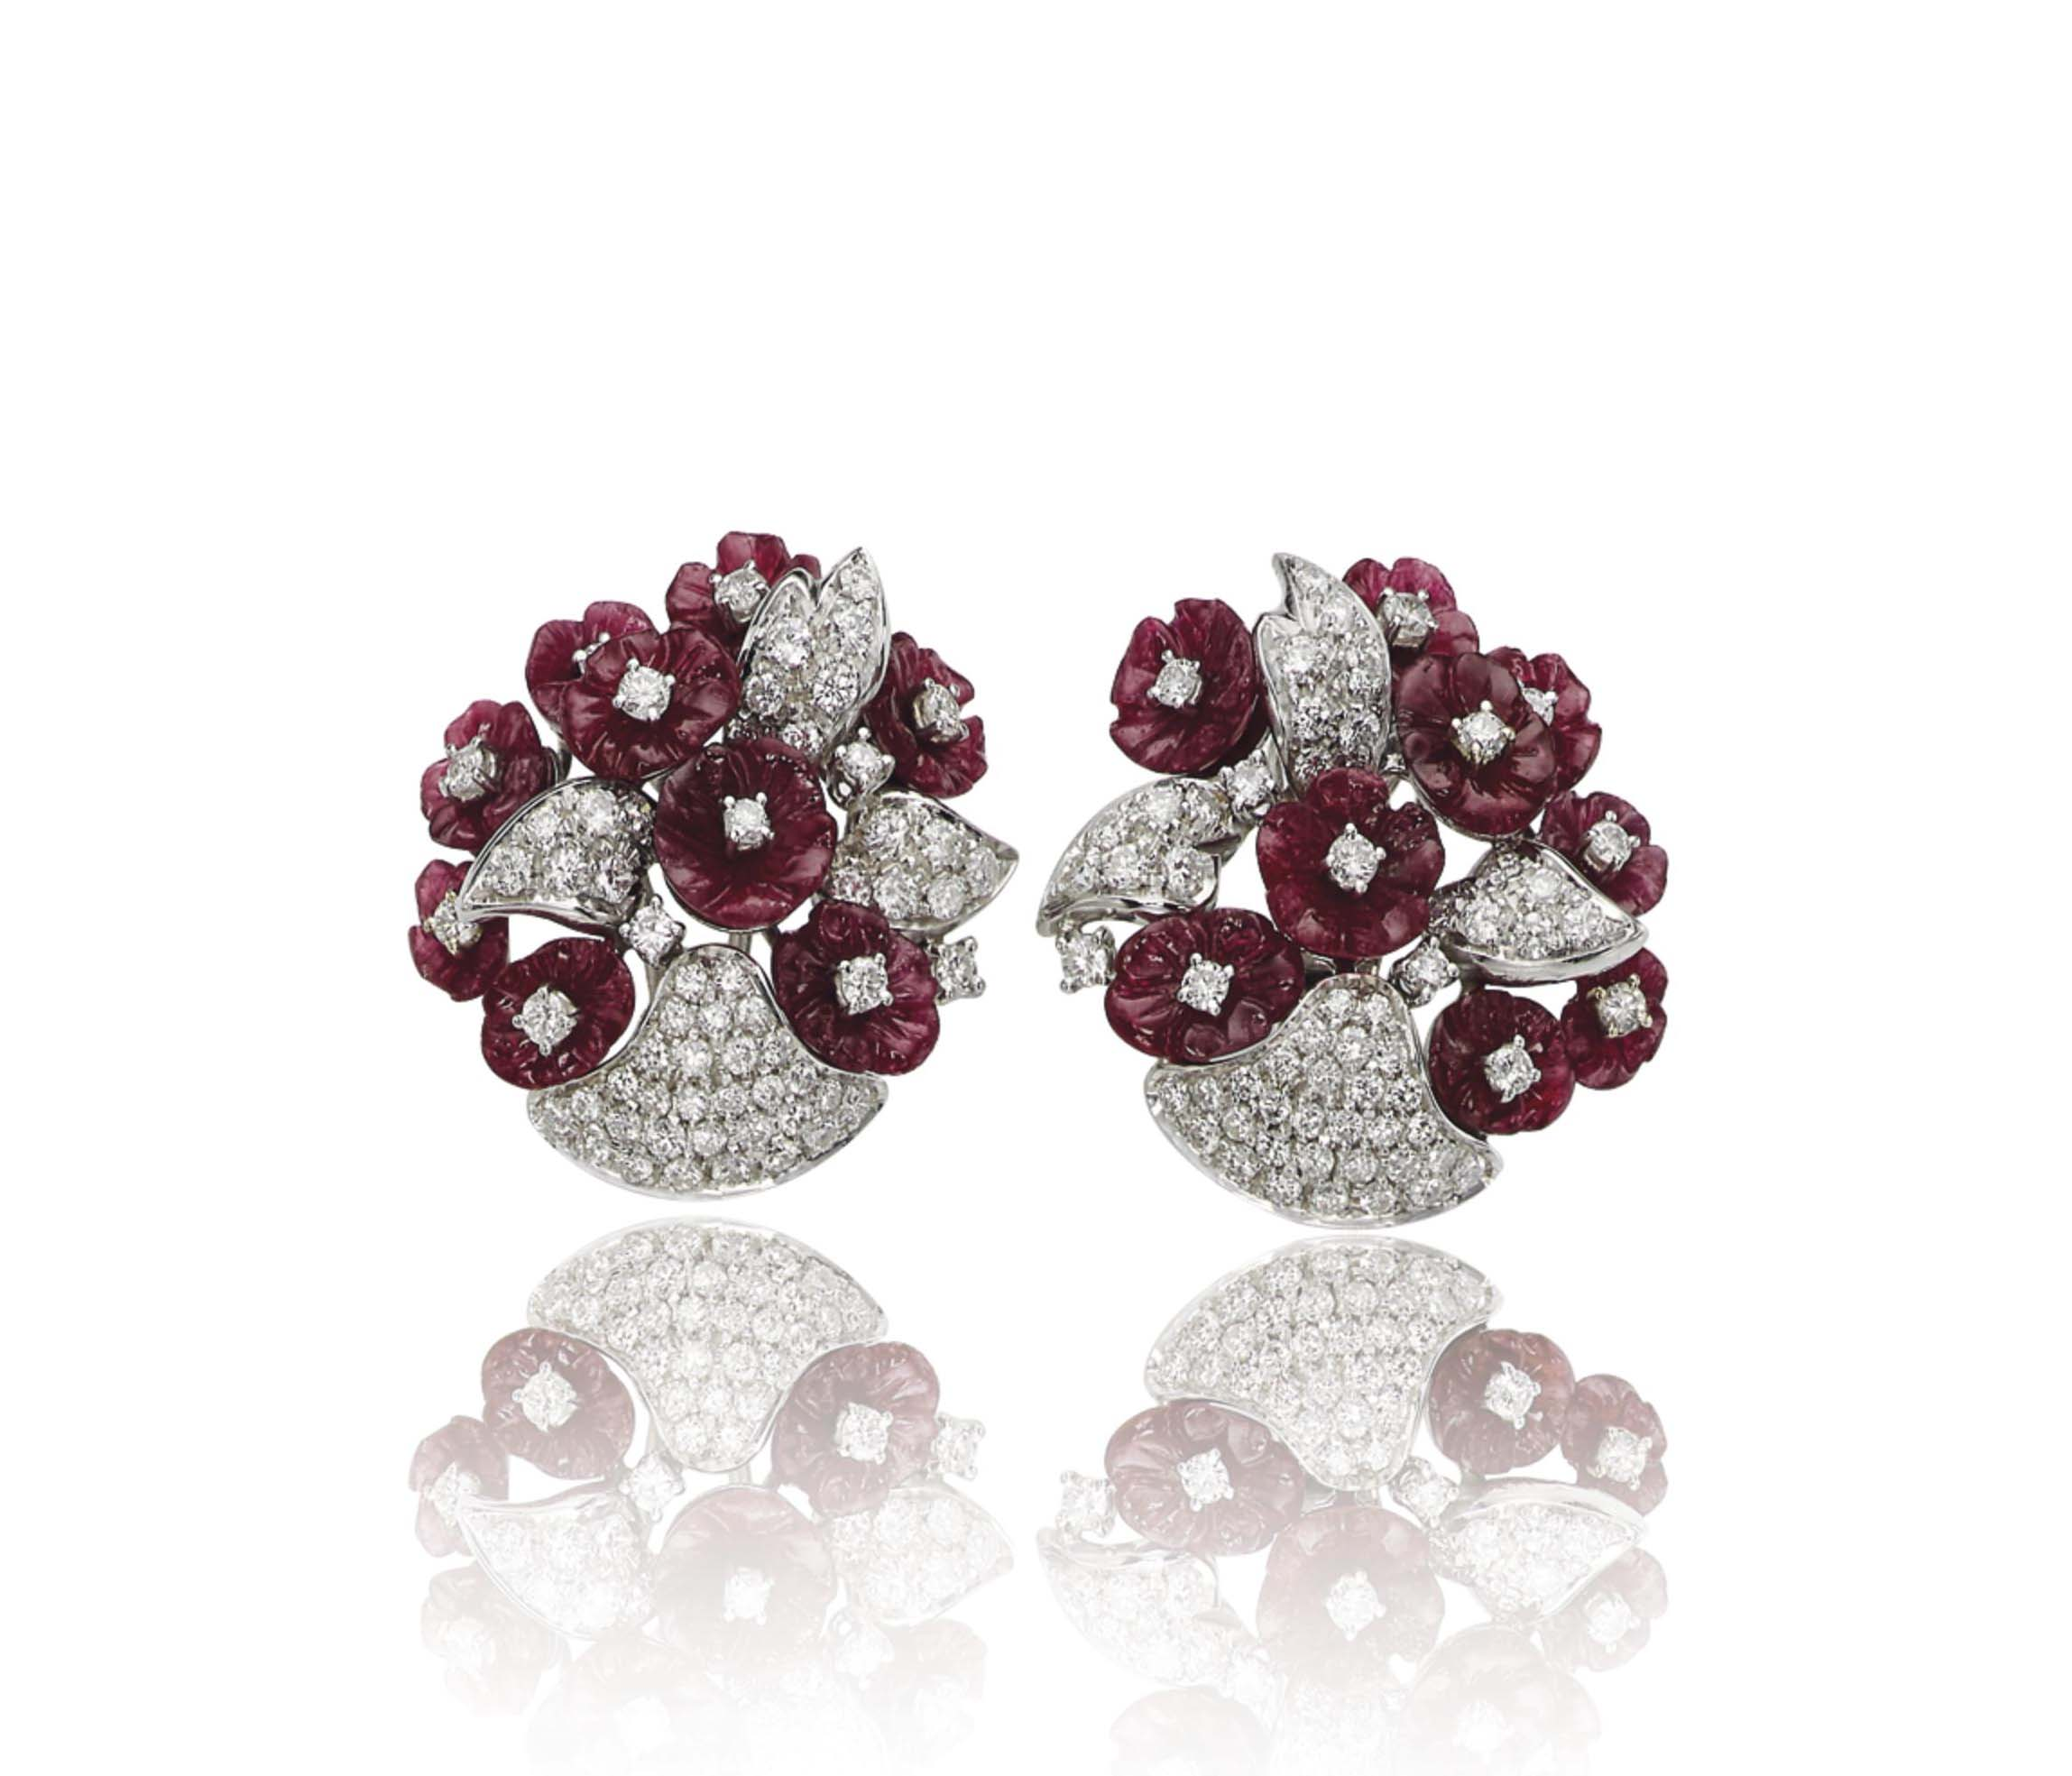 A PAIR OF RUBY AND DIAMOND EAR CLIPS, BY GIULIO VERONESI